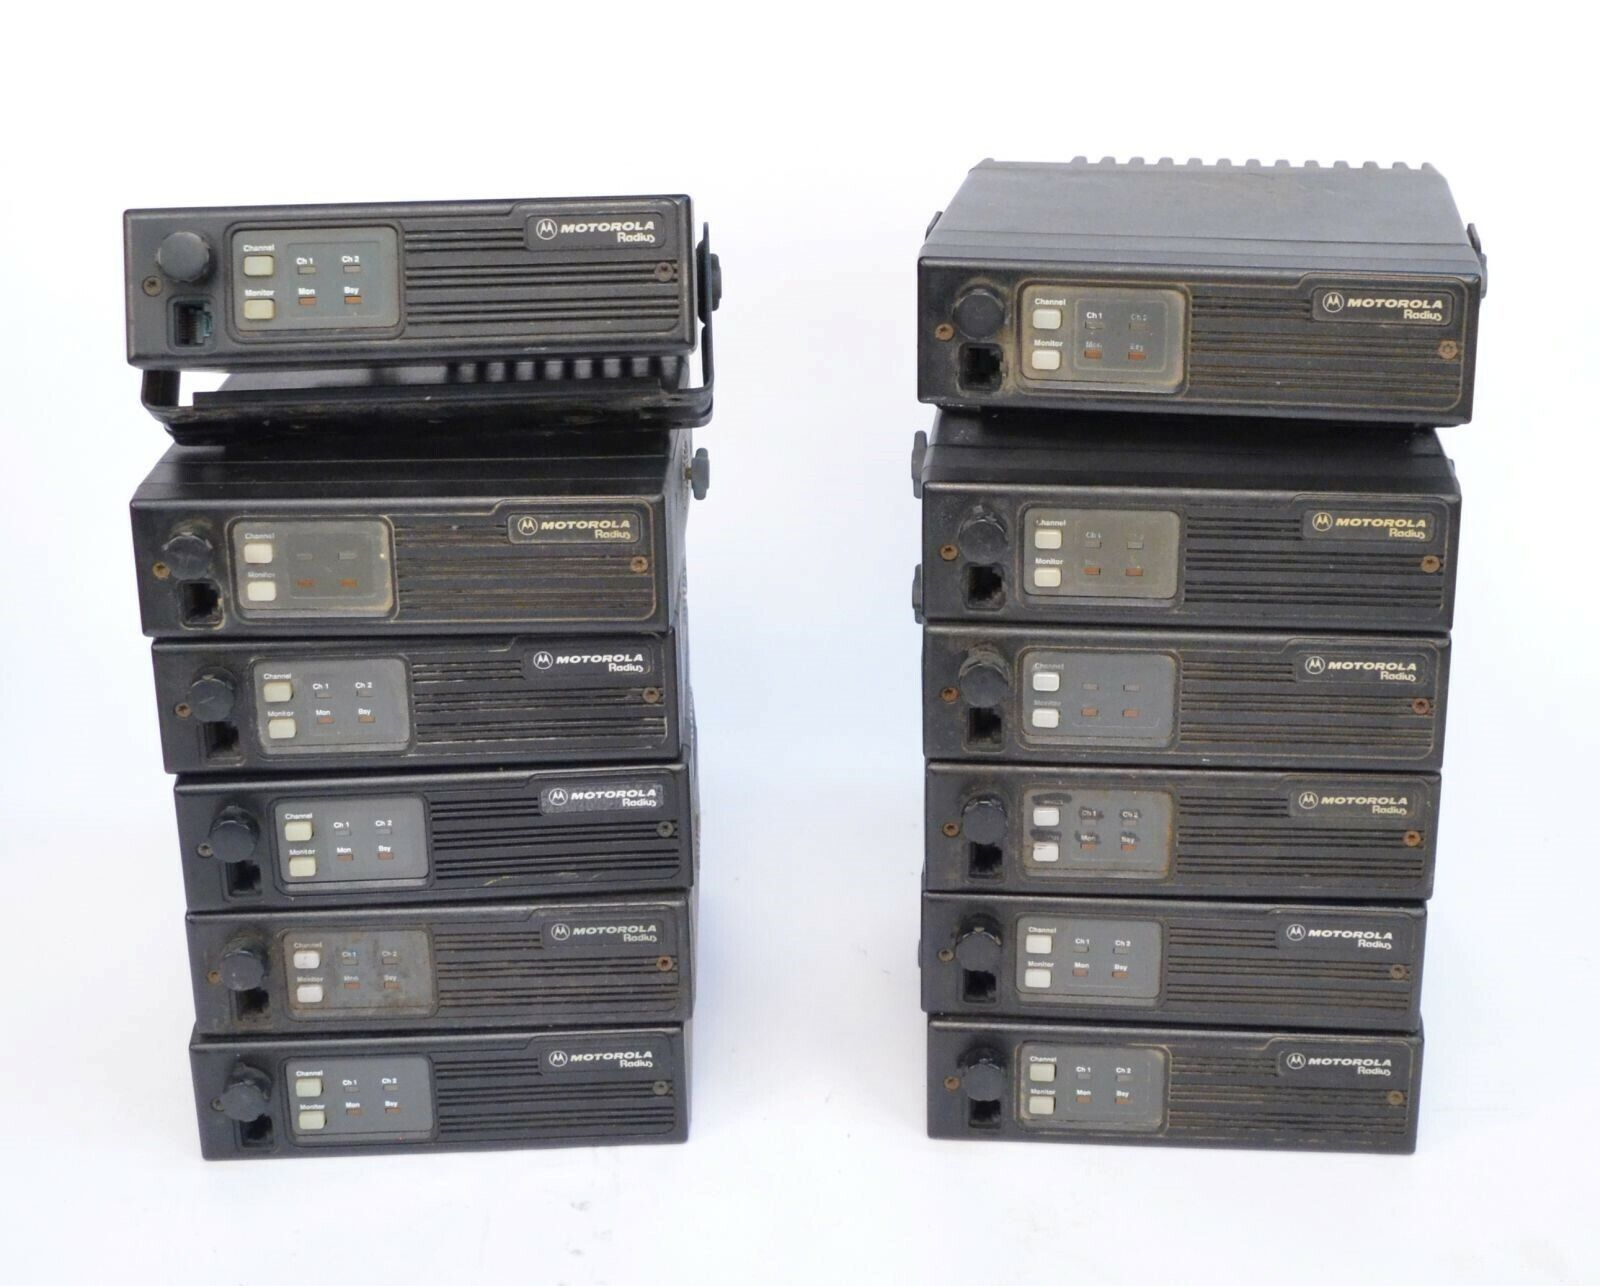 Lot (12) Motorola Radius M100 D43LRA73A5BK VHF 146-174MHz 45W 2-Channel Radio. Available Now for 299.99